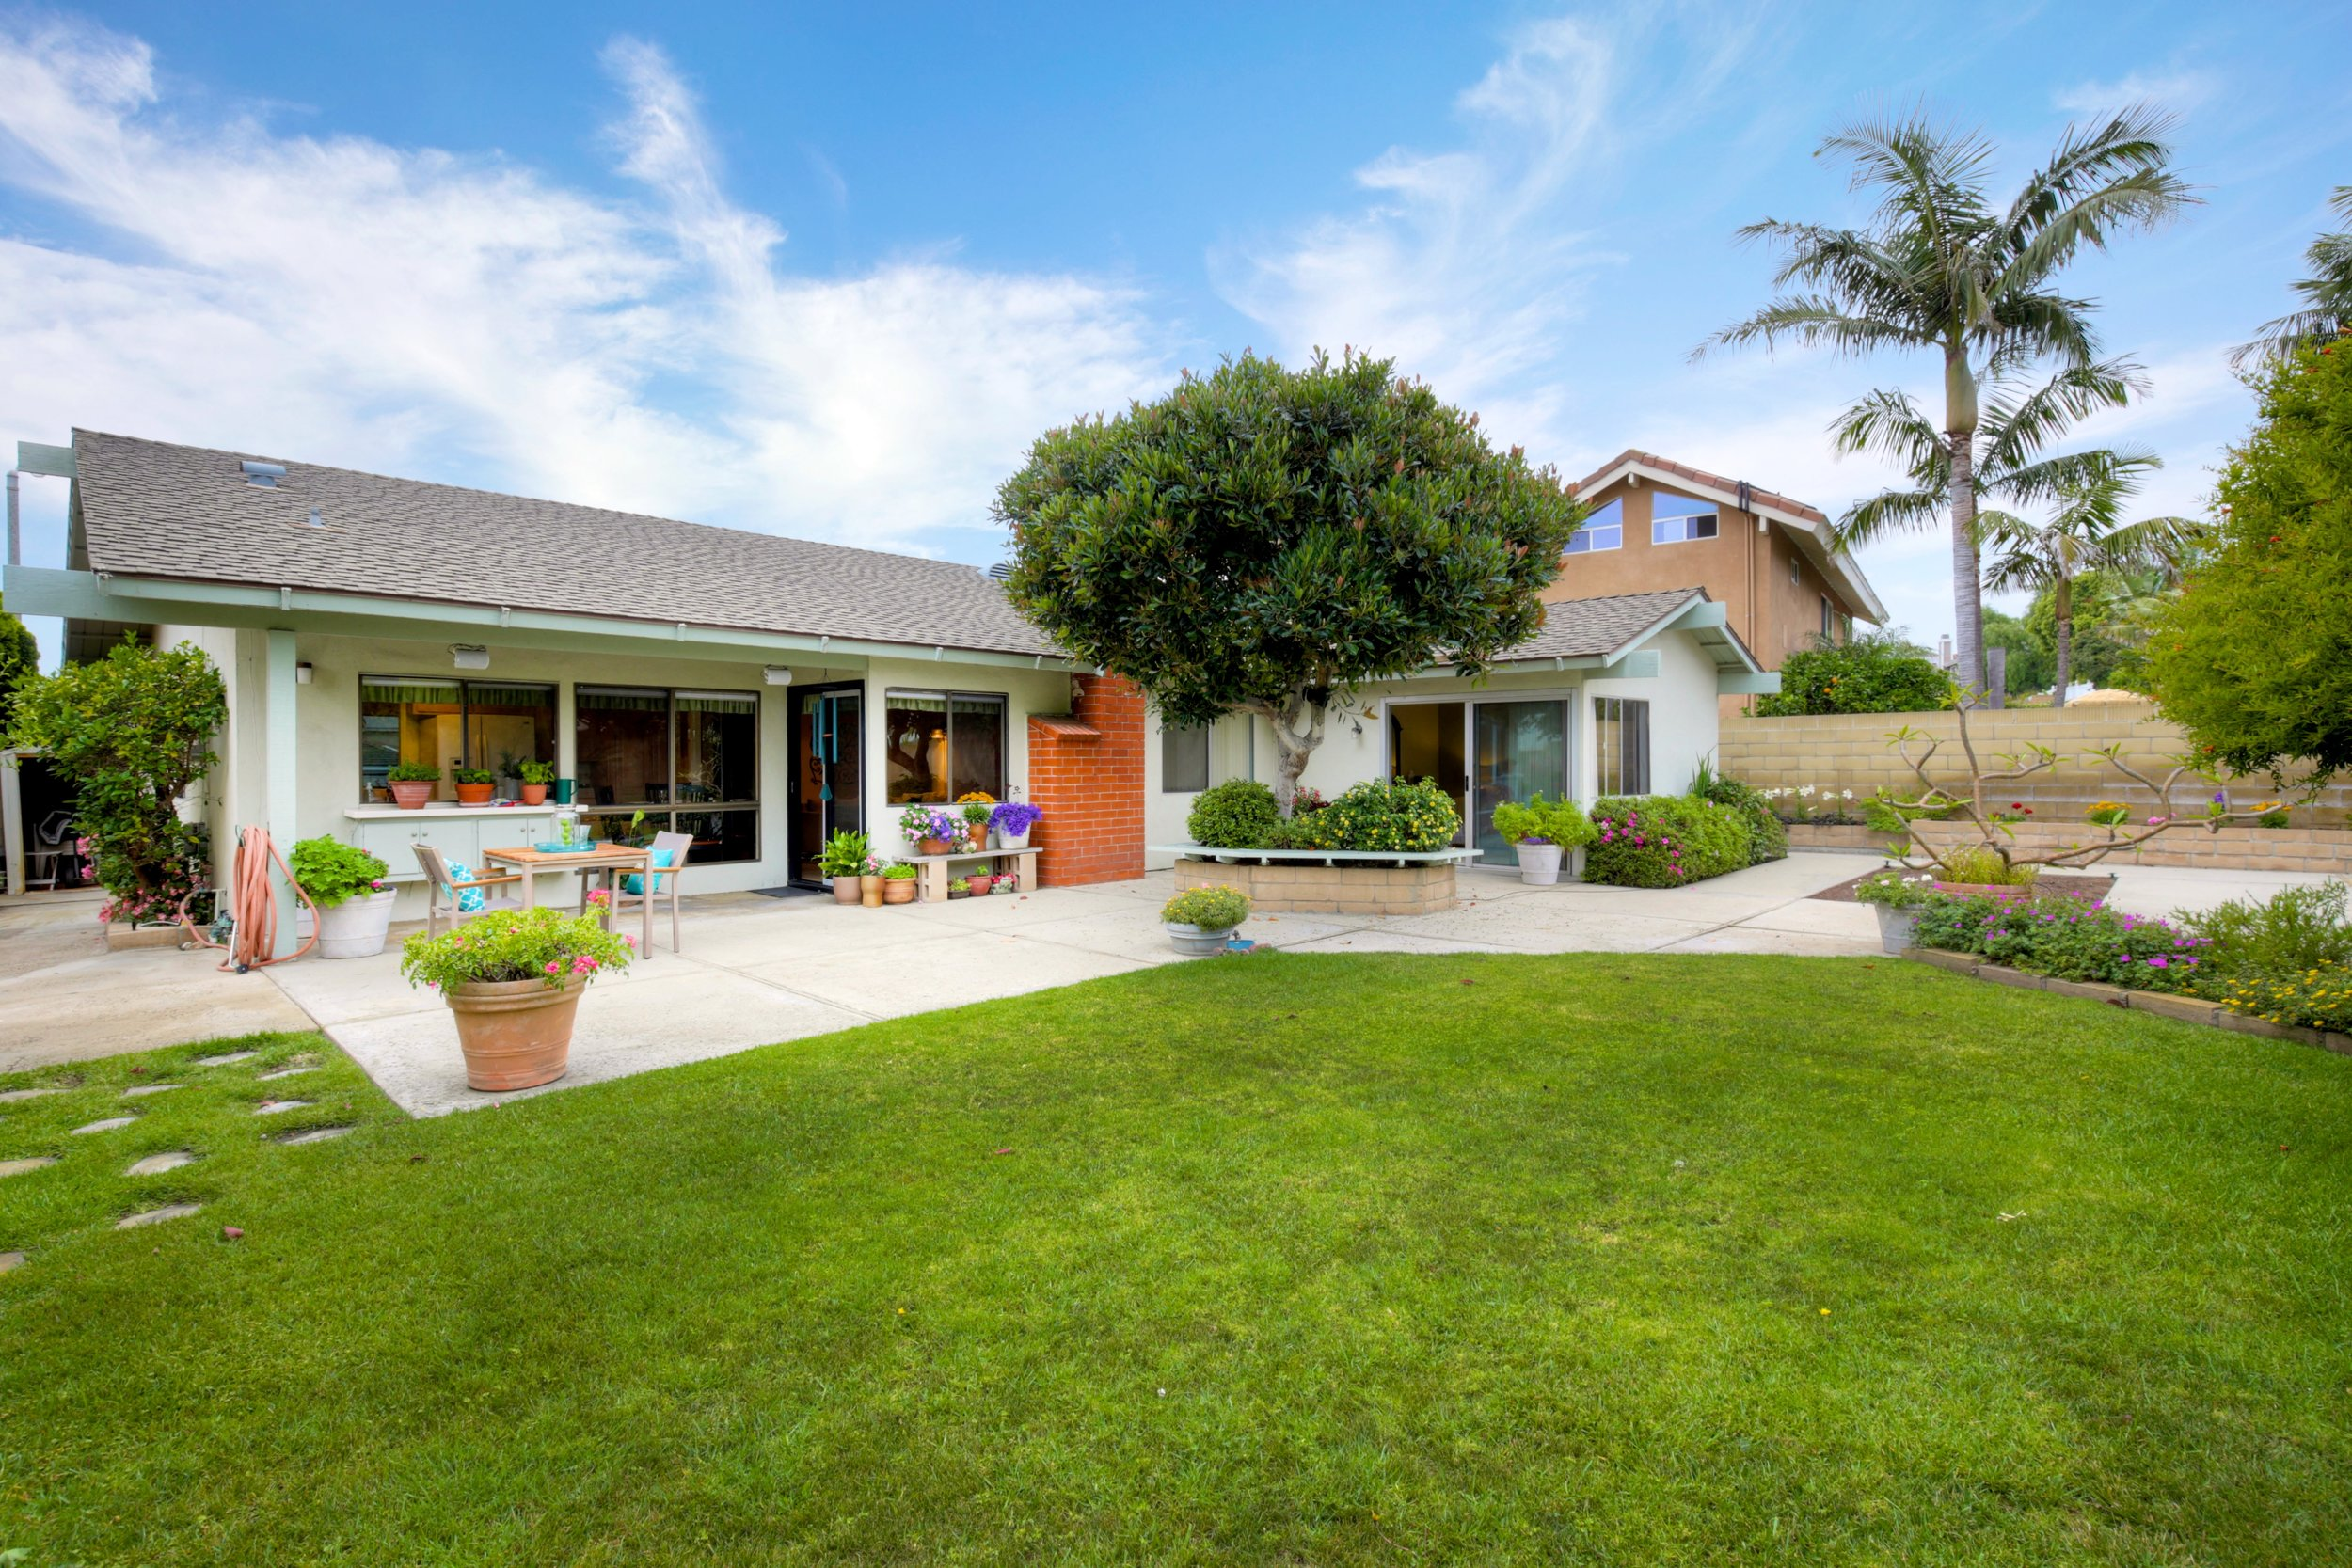 - Rare SeaCliff Single StorySOLD by MARIA X for $1,185,00019472 Surfdale Ln. Huntington Beach4 Bedrooms/2 Baths 1860 Sq ft.